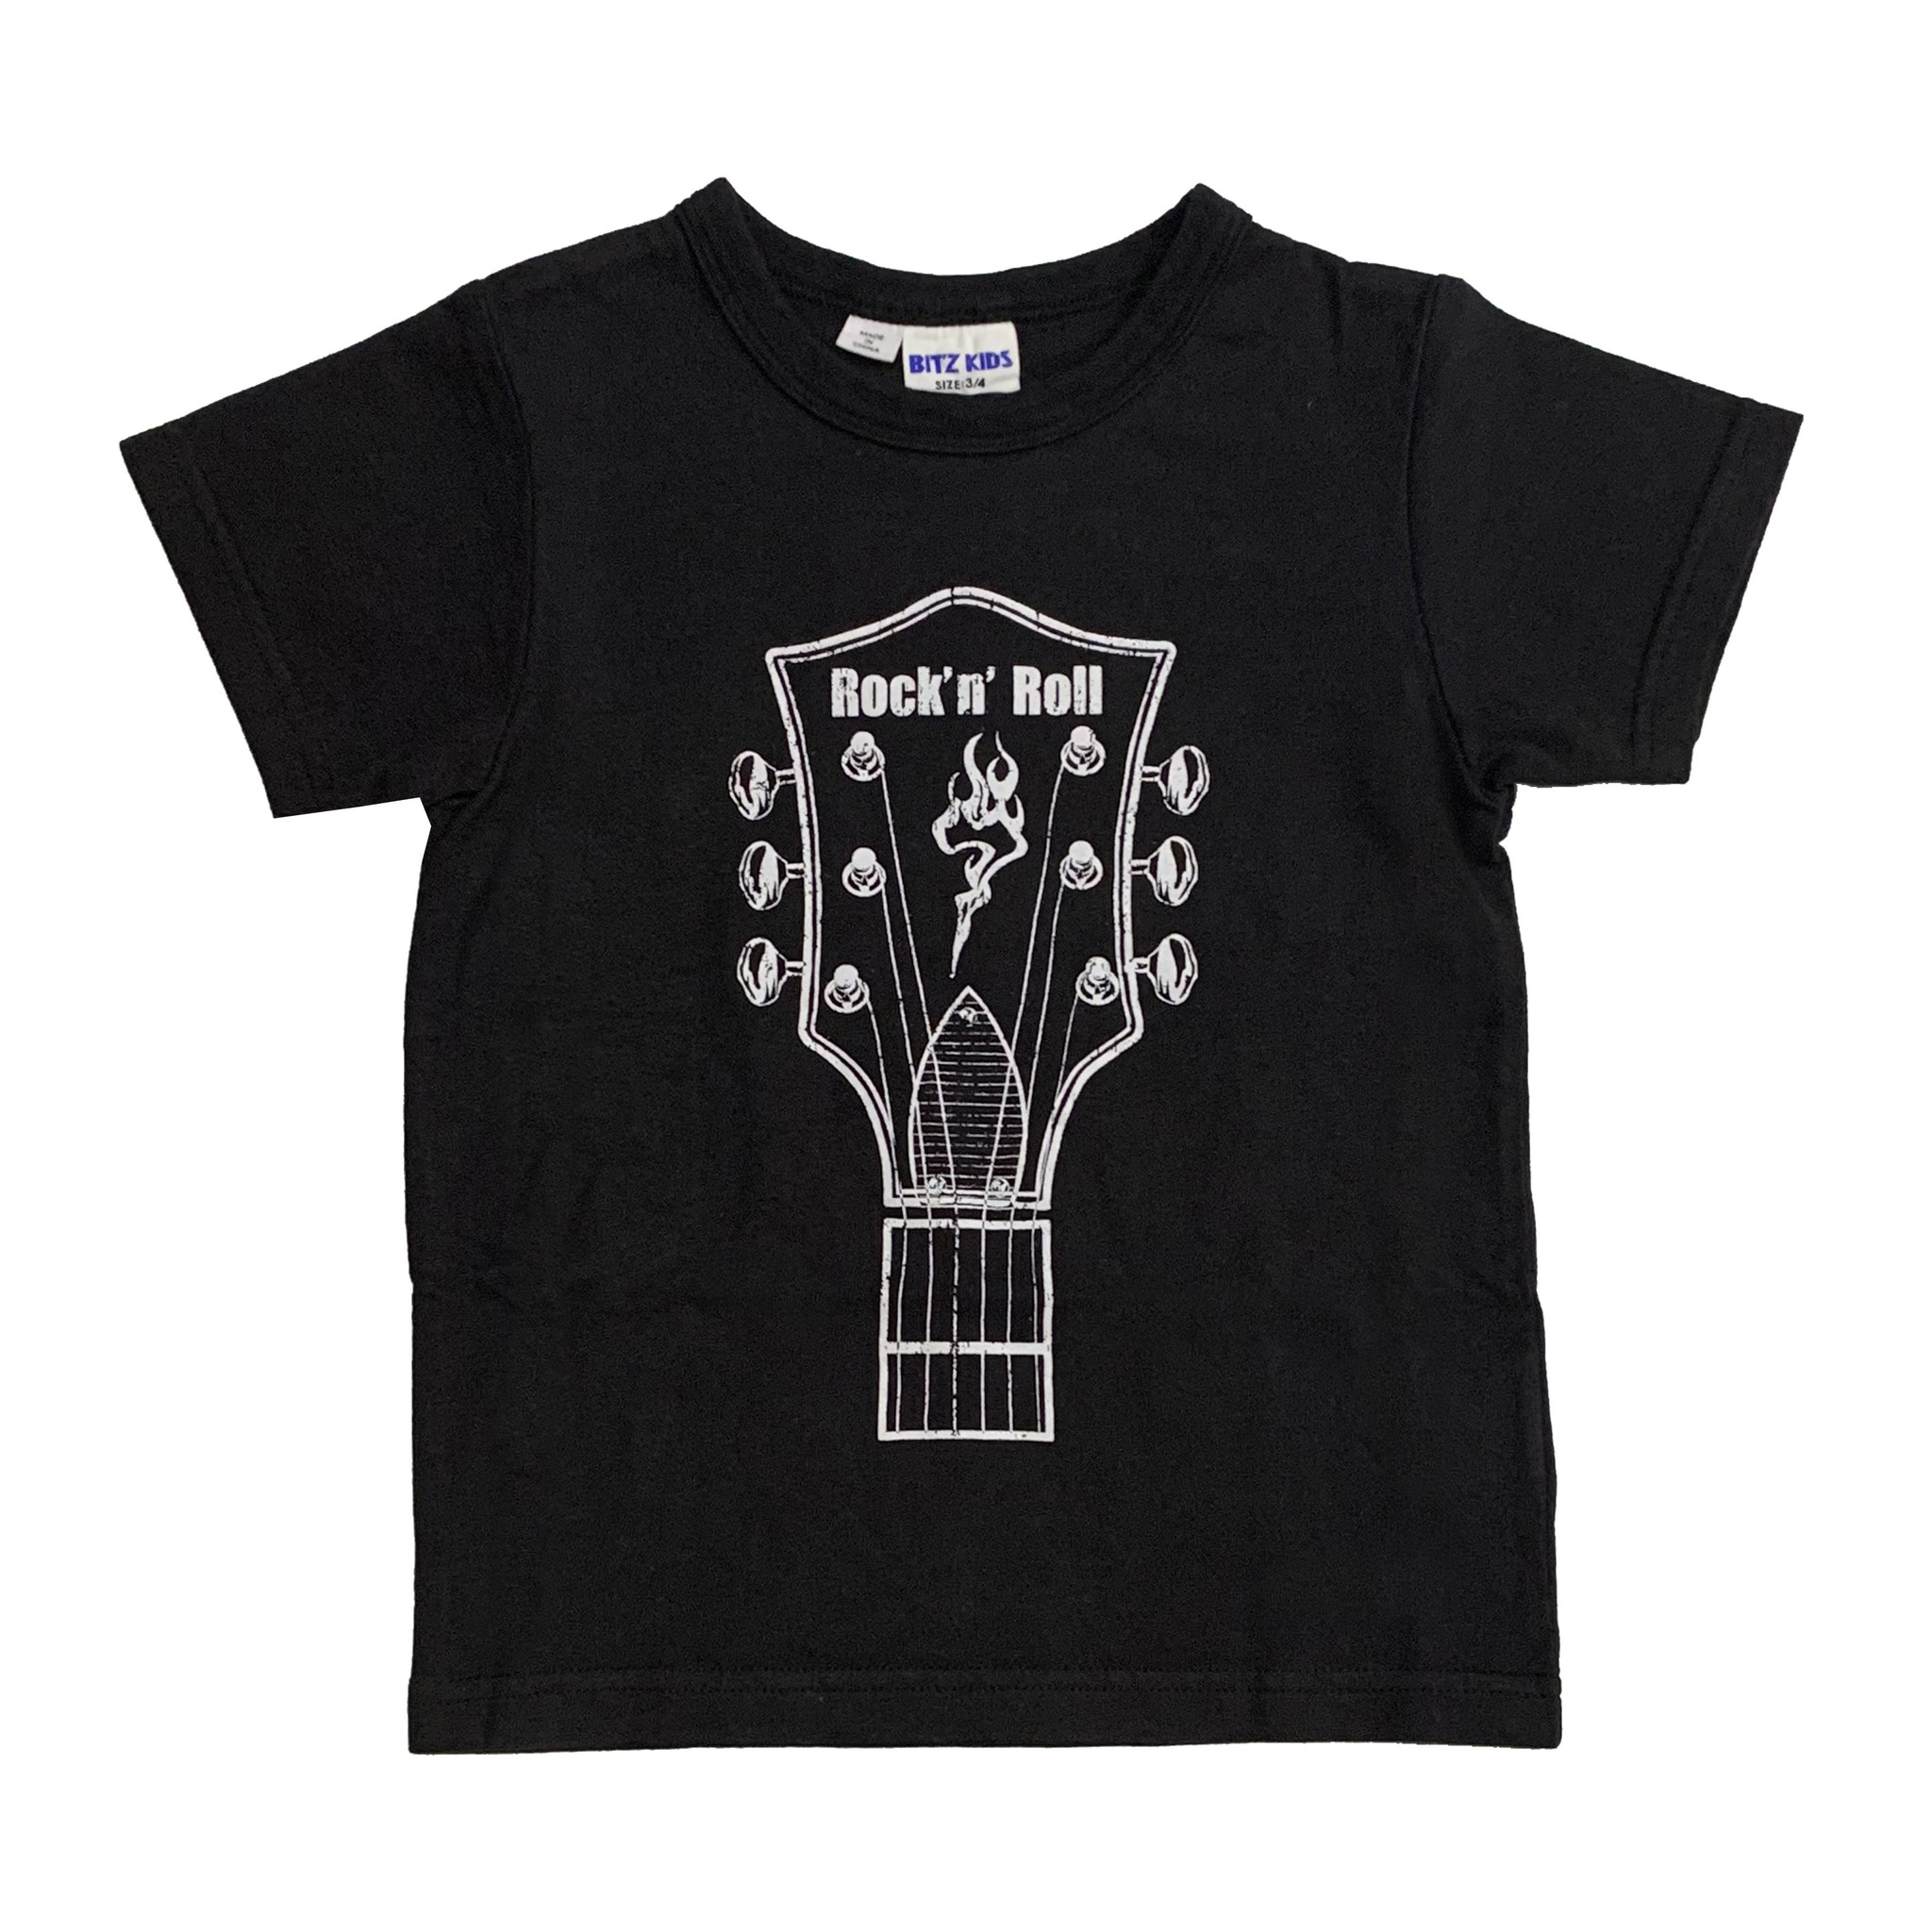 Bit'z Kids Rock n Roll Guitar Infant Tee